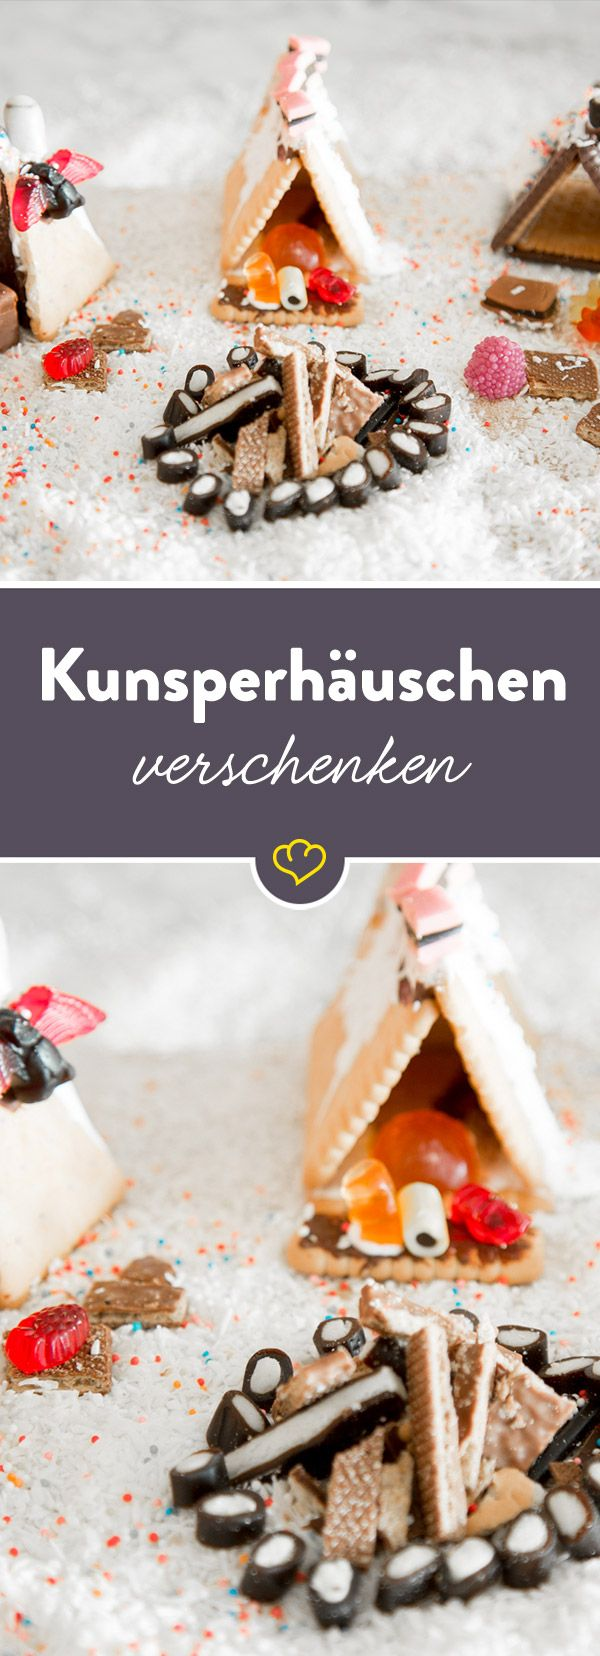 kleine knusperh uschen aus butterkeksen rezept geschenke aus der k che pinterest kekse. Black Bedroom Furniture Sets. Home Design Ideas